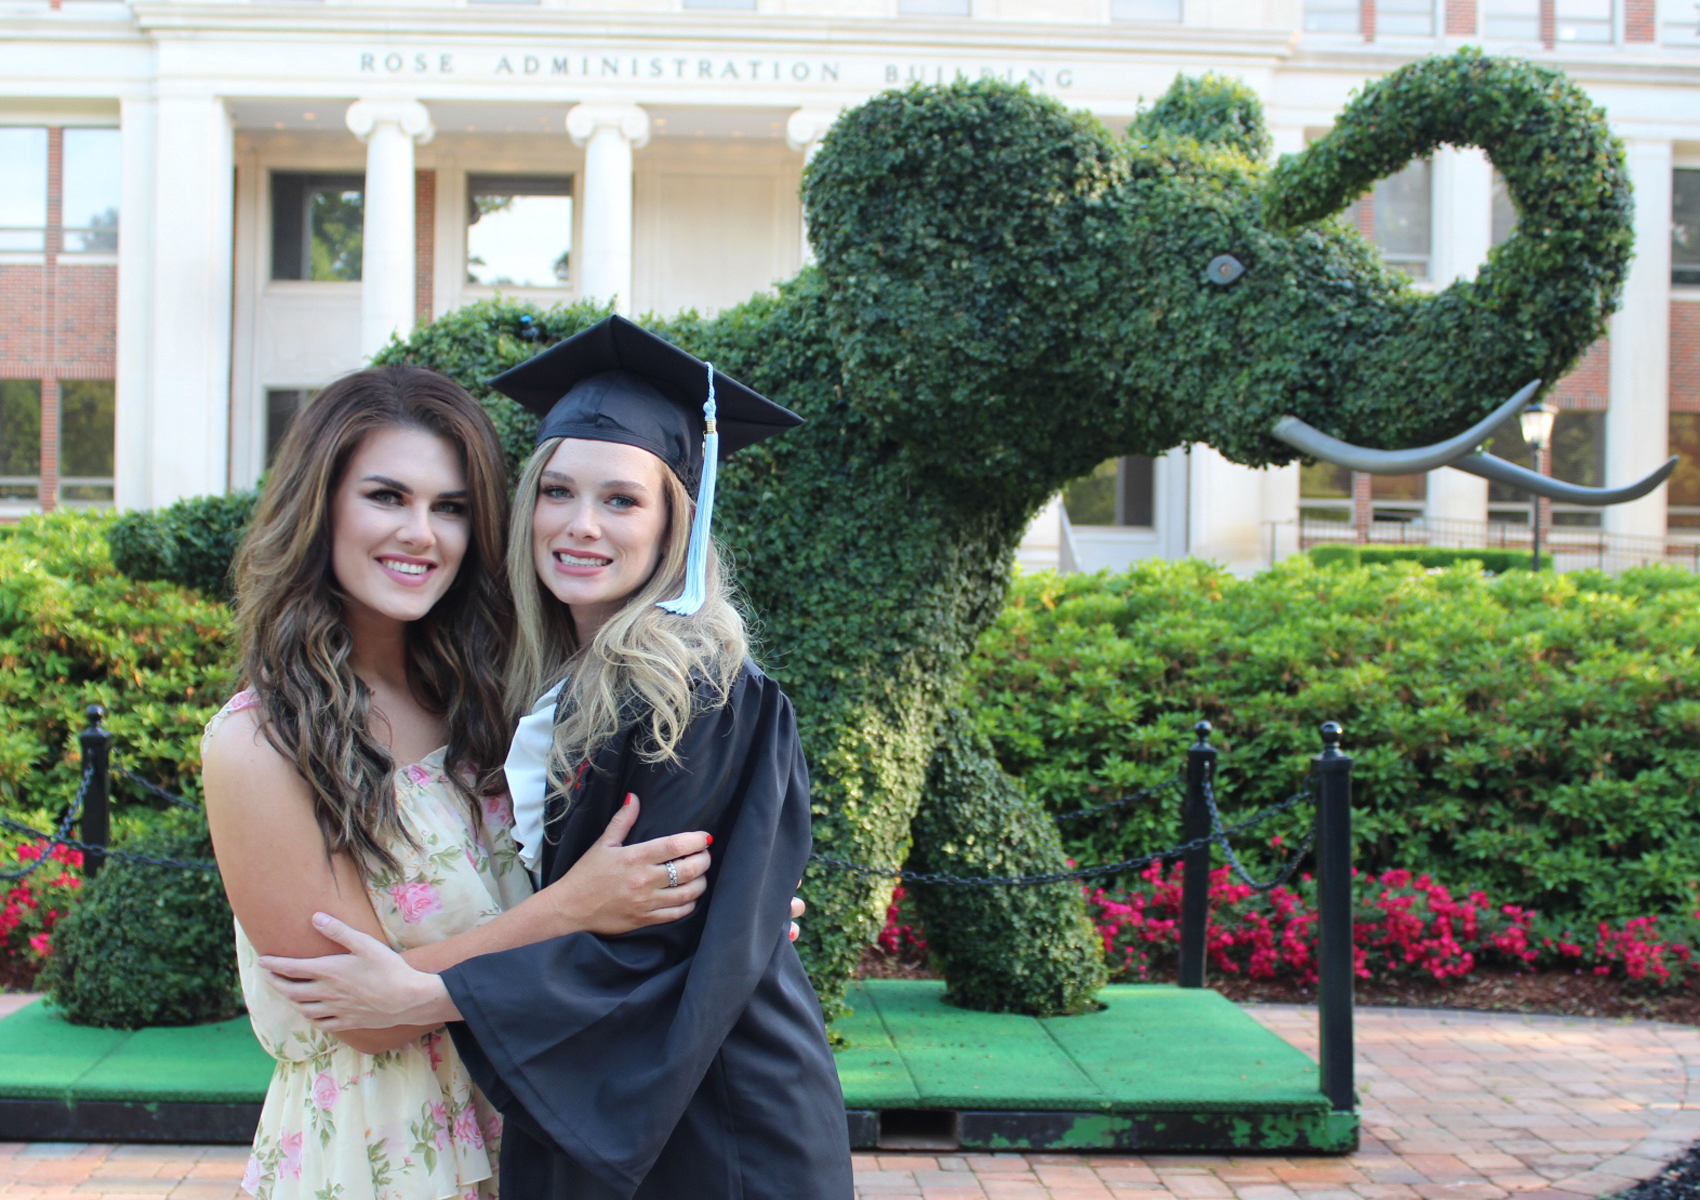 Graduation Gift Ideas That They'll Actually Enjoy